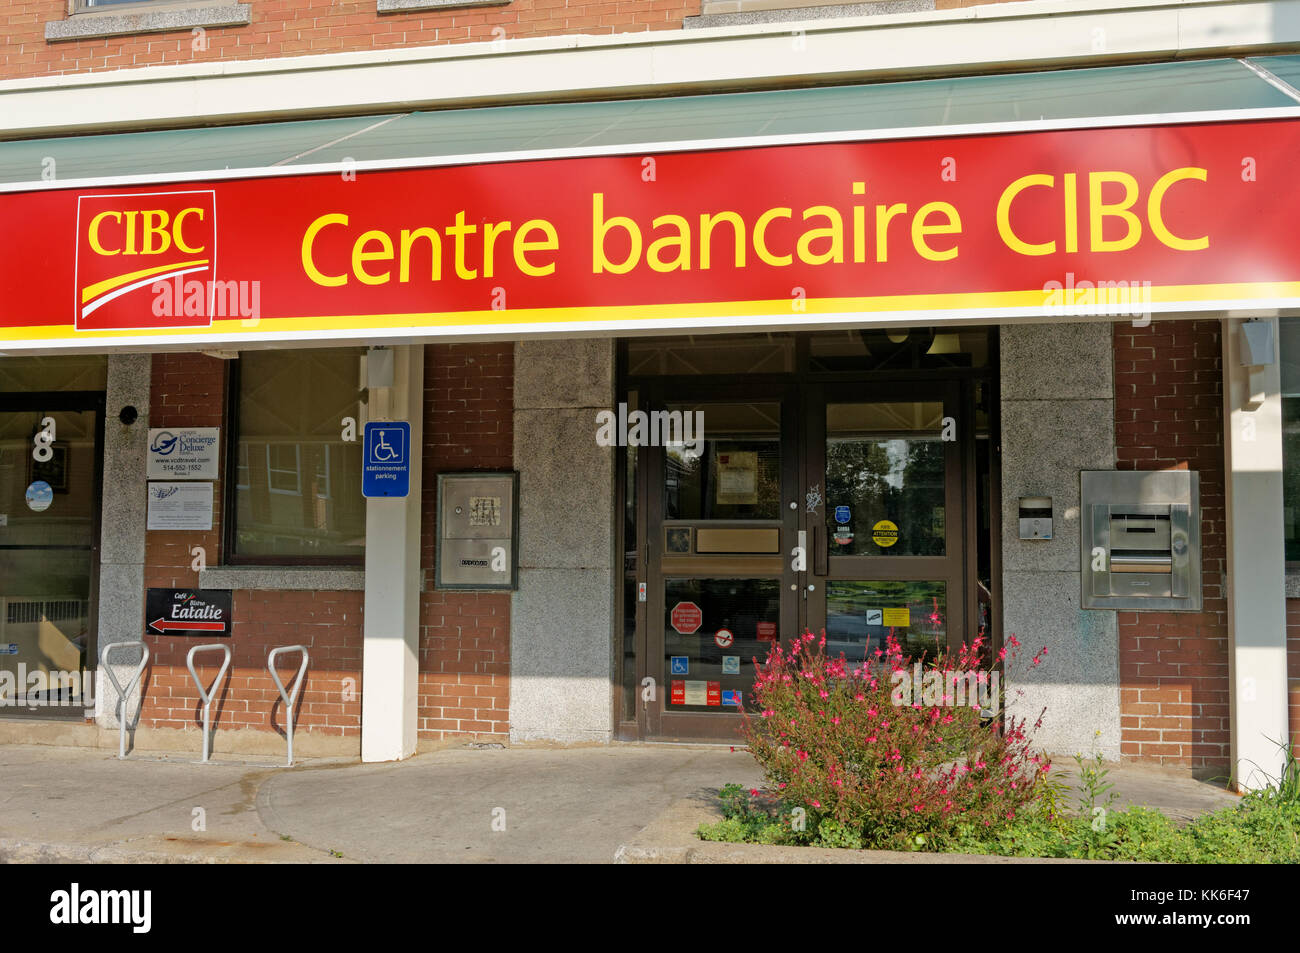 French language Canadian Imperial Bank of Commerce CIBC banking centre sign, Lachine, Montreal, Quebec, Canada - Stock Image